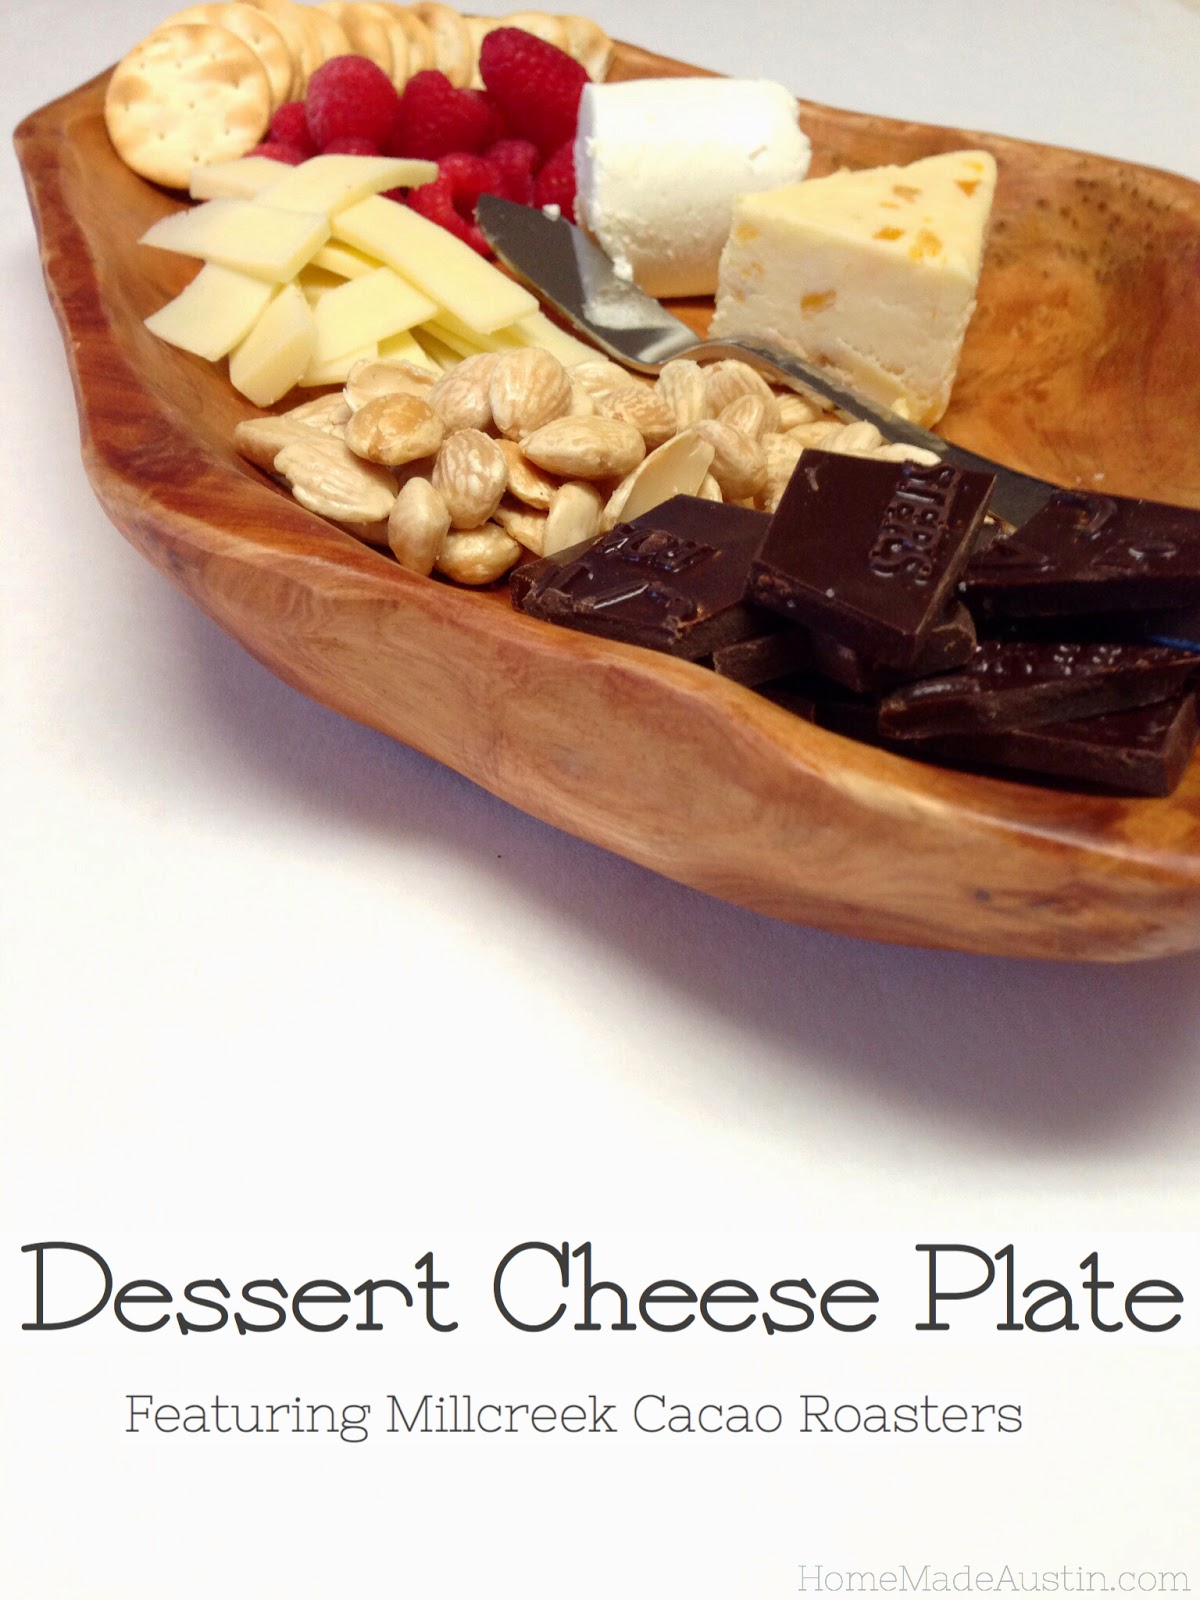 This year instead of firing up the oven to bake a treat to end our at-home Valentineu0027s meal weu0027re going to have a dessert cheese plate.  sc 1 st  Homemade Austin & Home Made Austin: Celebrate Love with a Dessert Cheese Plate